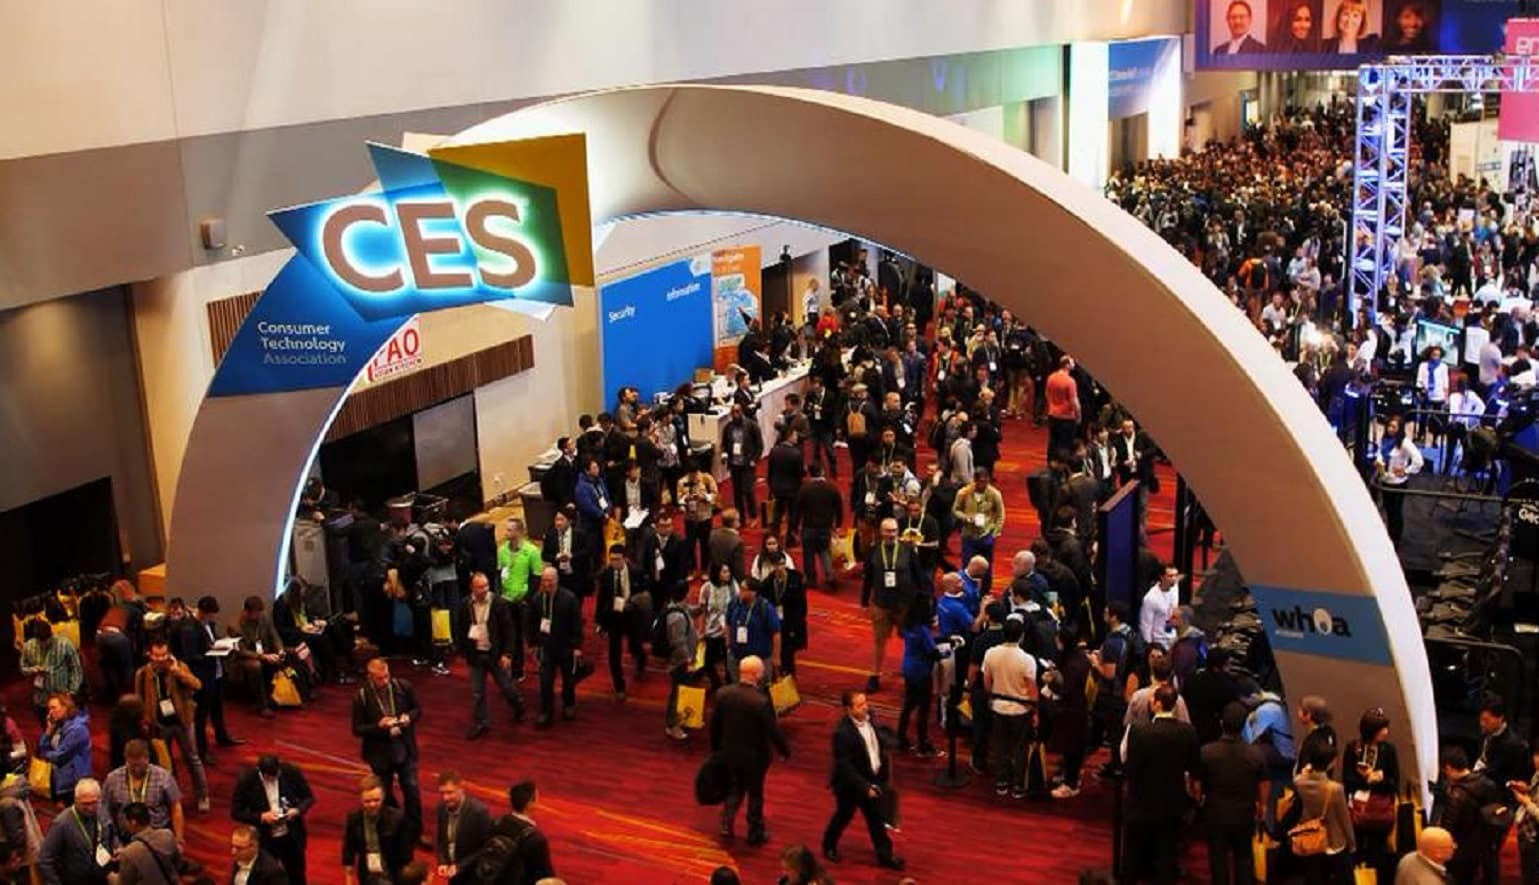 ces 2019 event with people entering the building